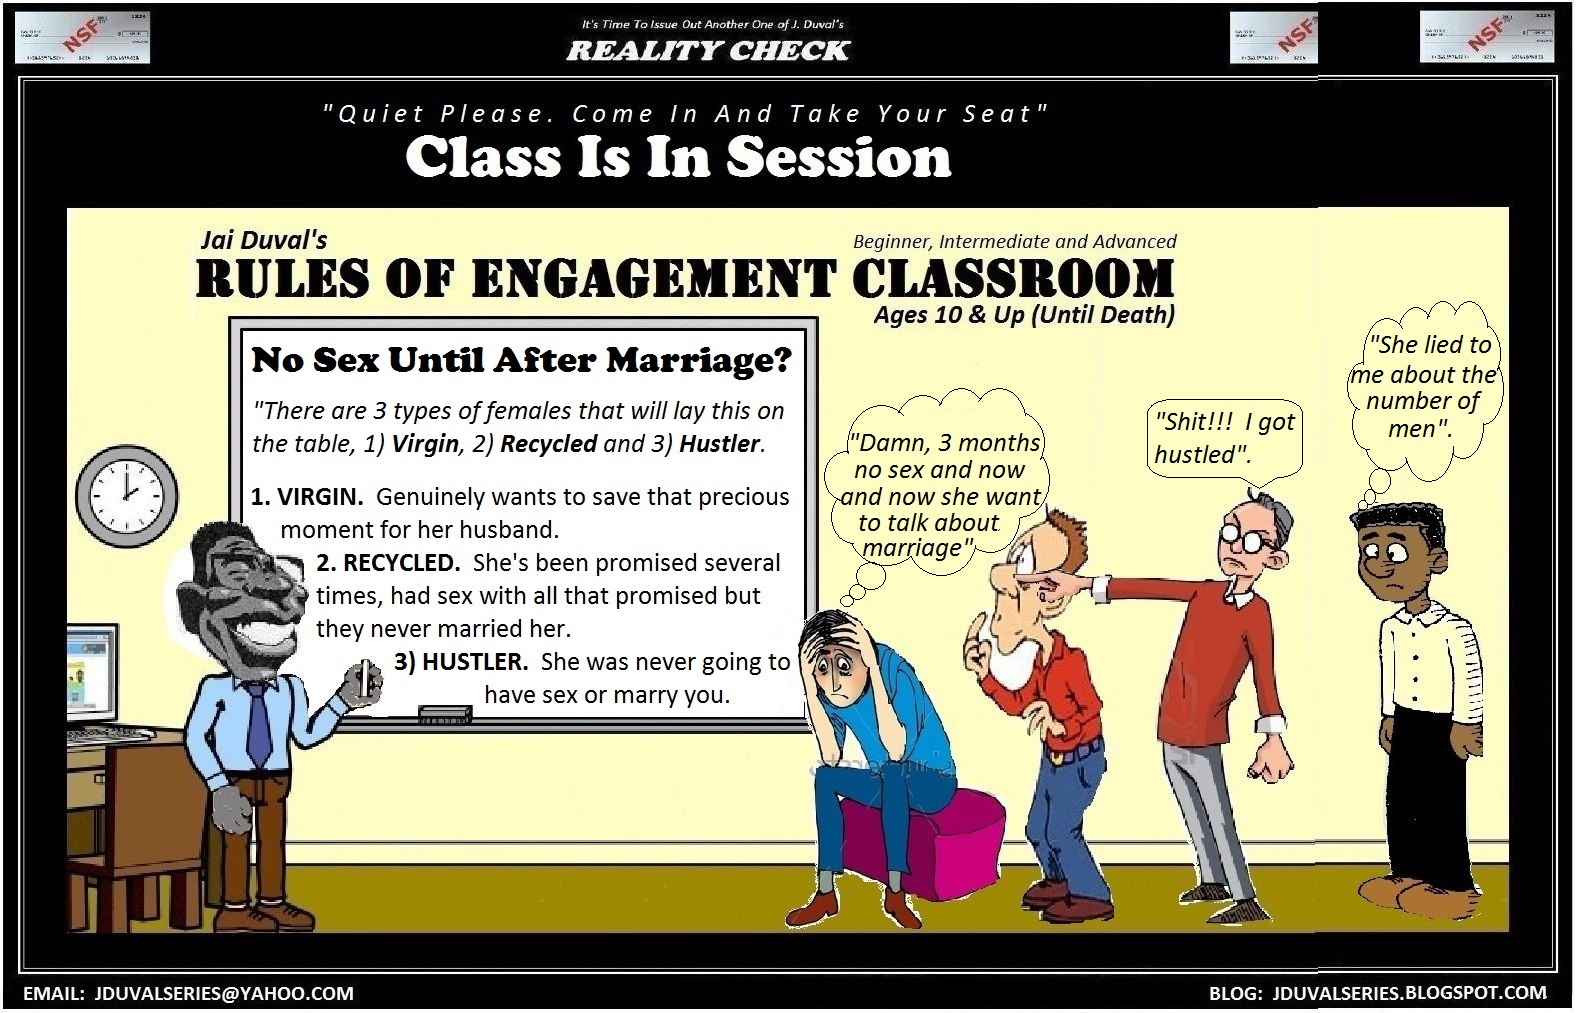 """... a personal relationship INTEREST in looks you in the eyes and says, """"I am not going to have sex (or sex again) with anyone until after I am married""""."""